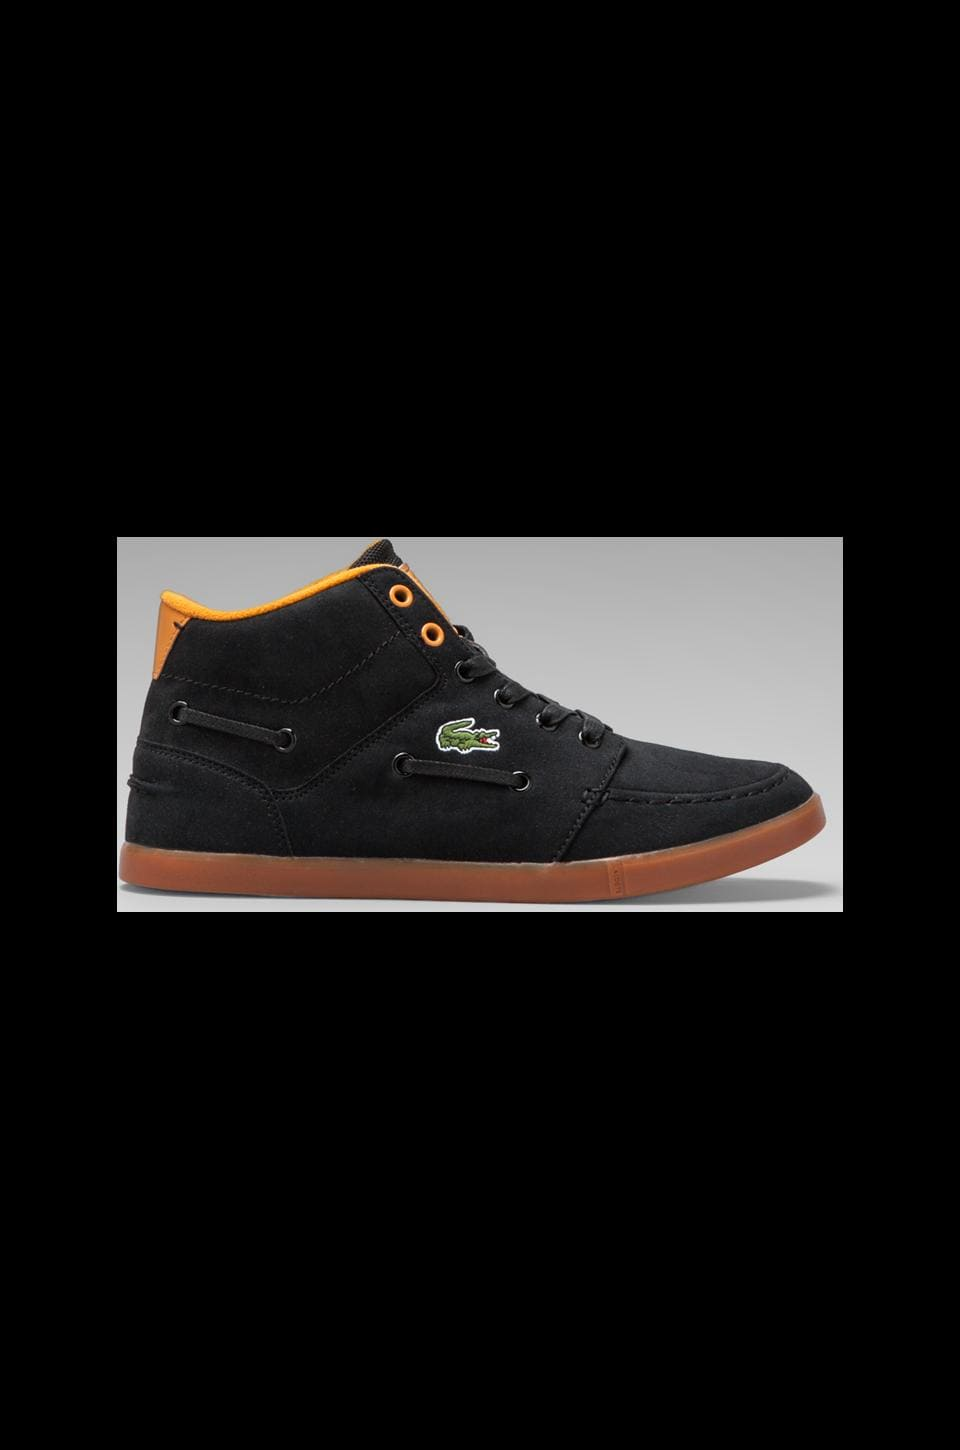 Lacoste Live Crosier Sail Mid in Black/Orange